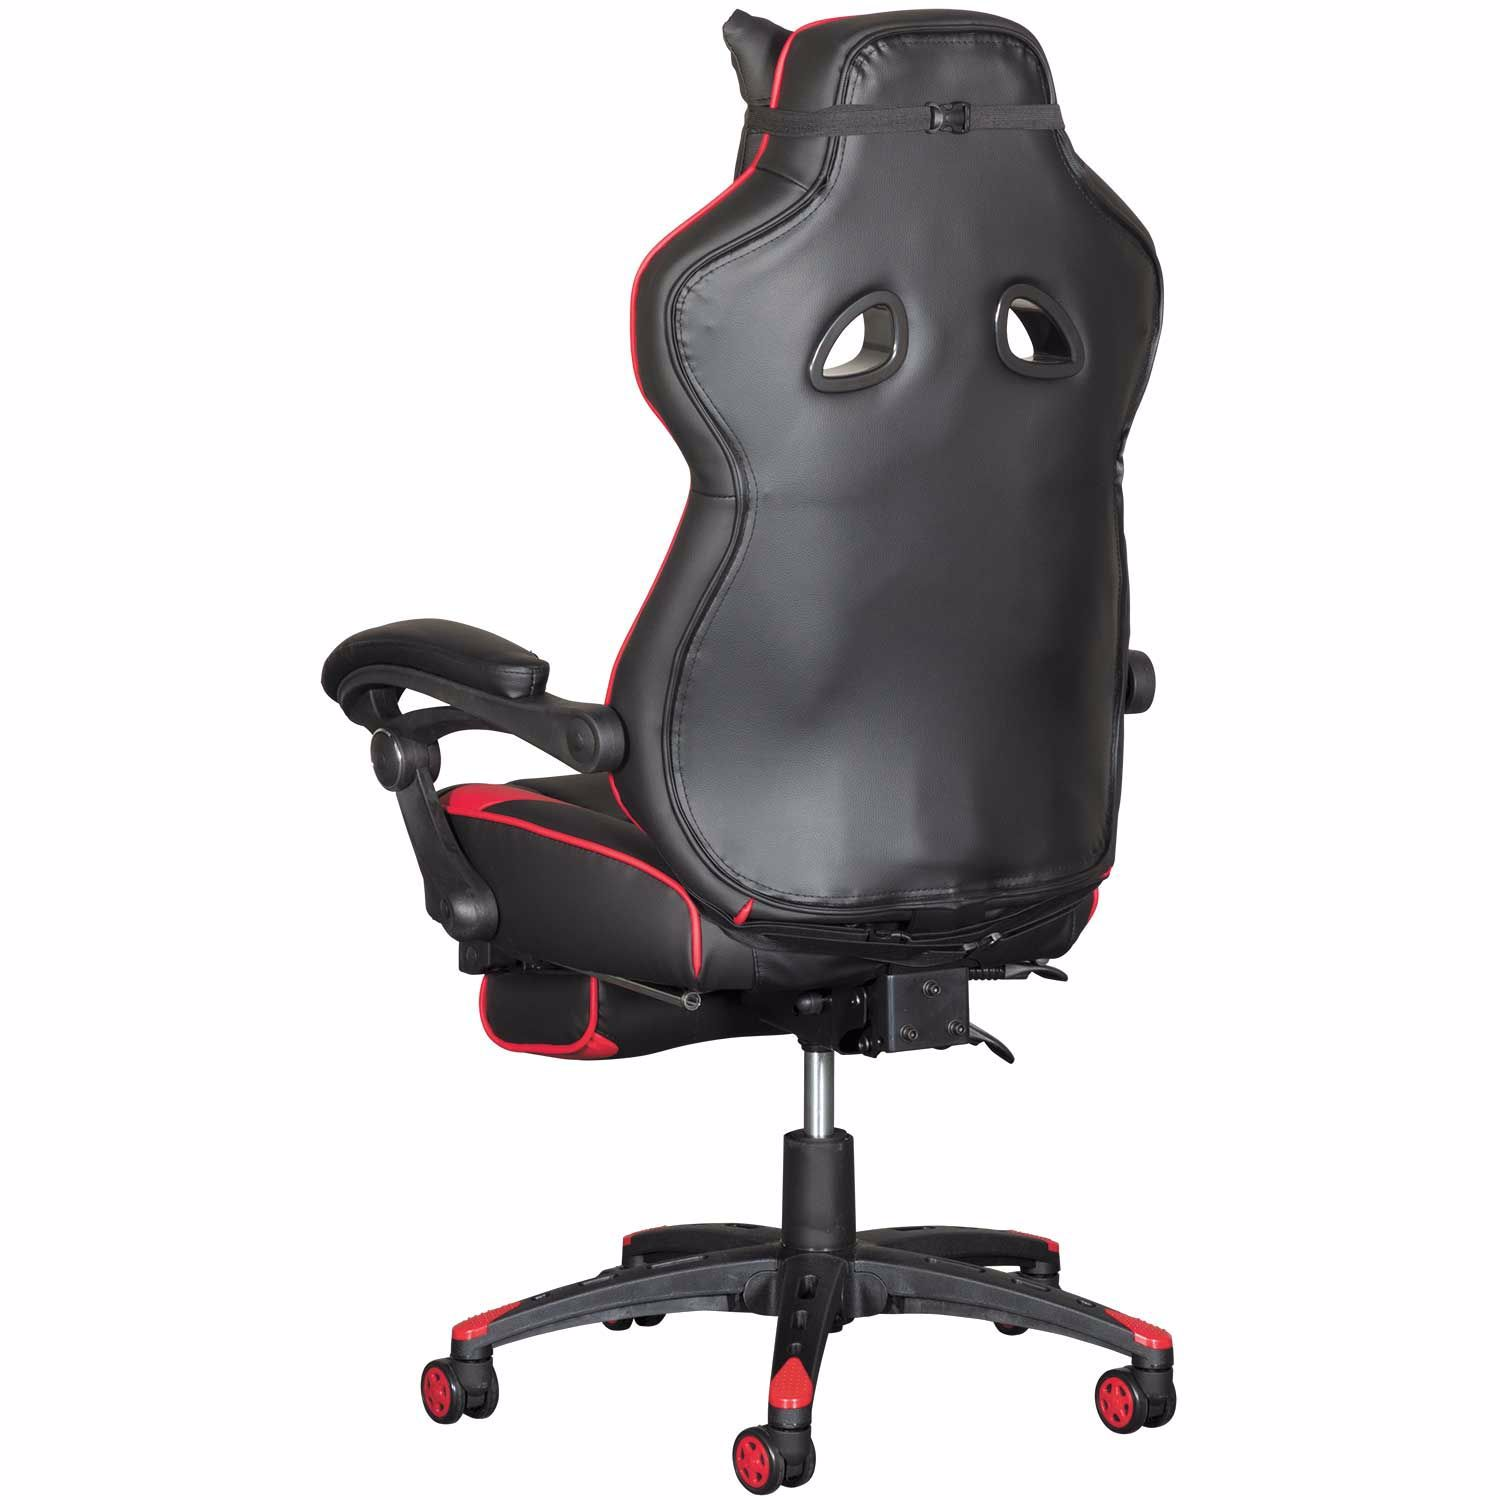 Marvelous Revolution Red Gaming Chair With Footrest Bralicious Painted Fabric Chair Ideas Braliciousco